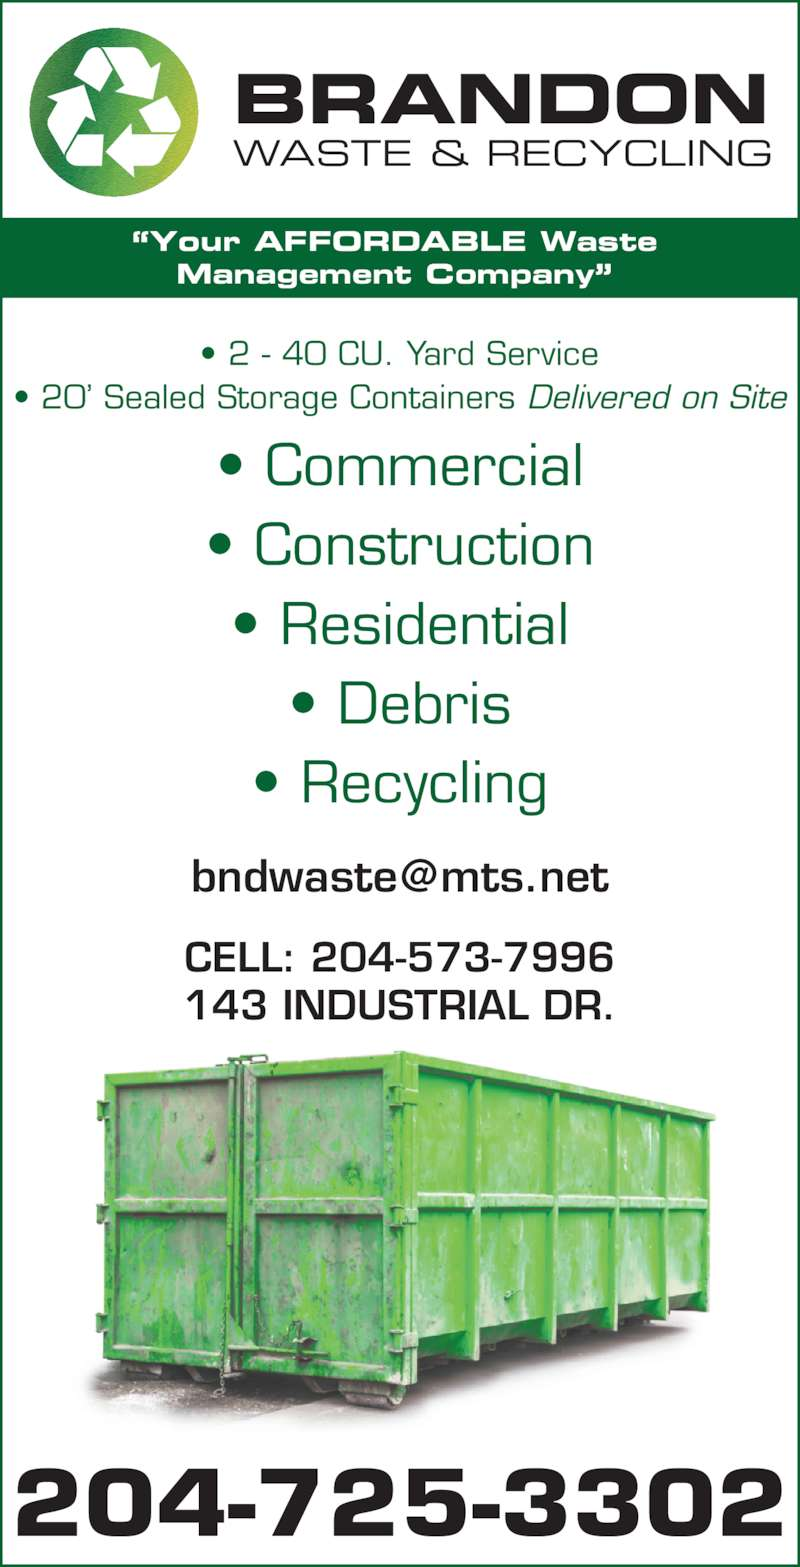 Brandon Waste & Recycling (204-725-3302) - Display Ad - Management Company? ? Commercial ? Construction ? Residential ? Debris ? Recycling ? 2 - 40 CU. Yard Service ? 20? Sealed Storage Containers Delivered on Site BRANDON WASTE & RECYCLING CELL: 204-573-7996 143 INDUSTRIAL DR. 204-725-3302 ?Your AFFORDABLE Waste